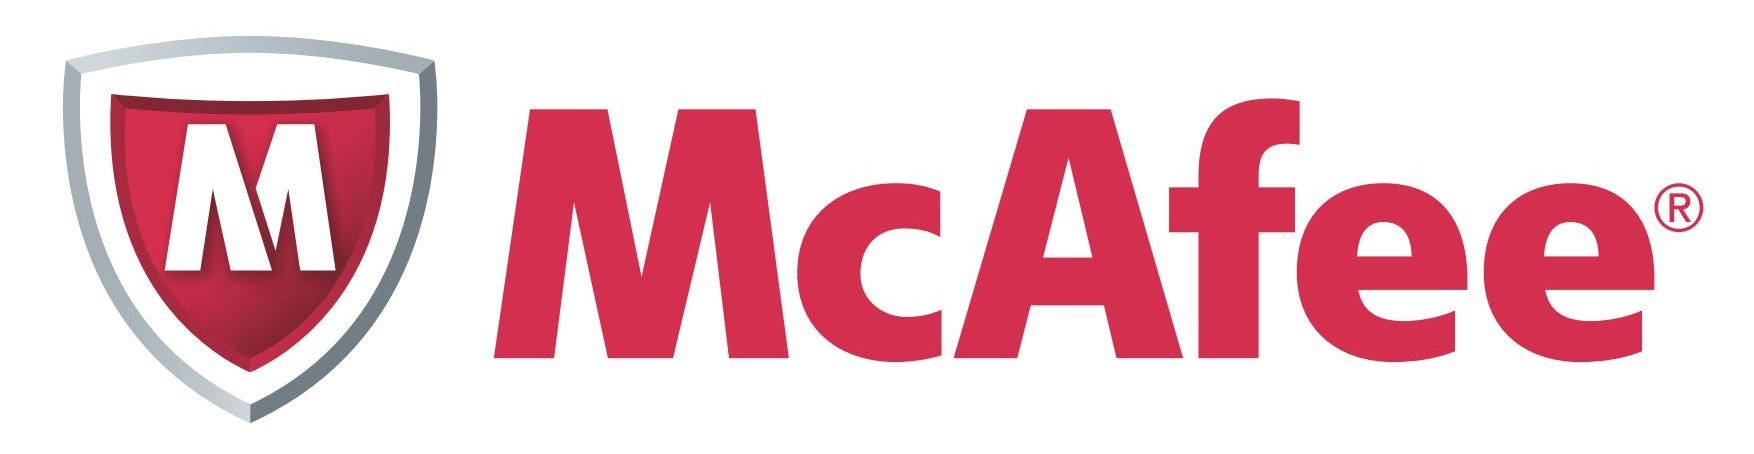 McAfee Logo Download Vector.